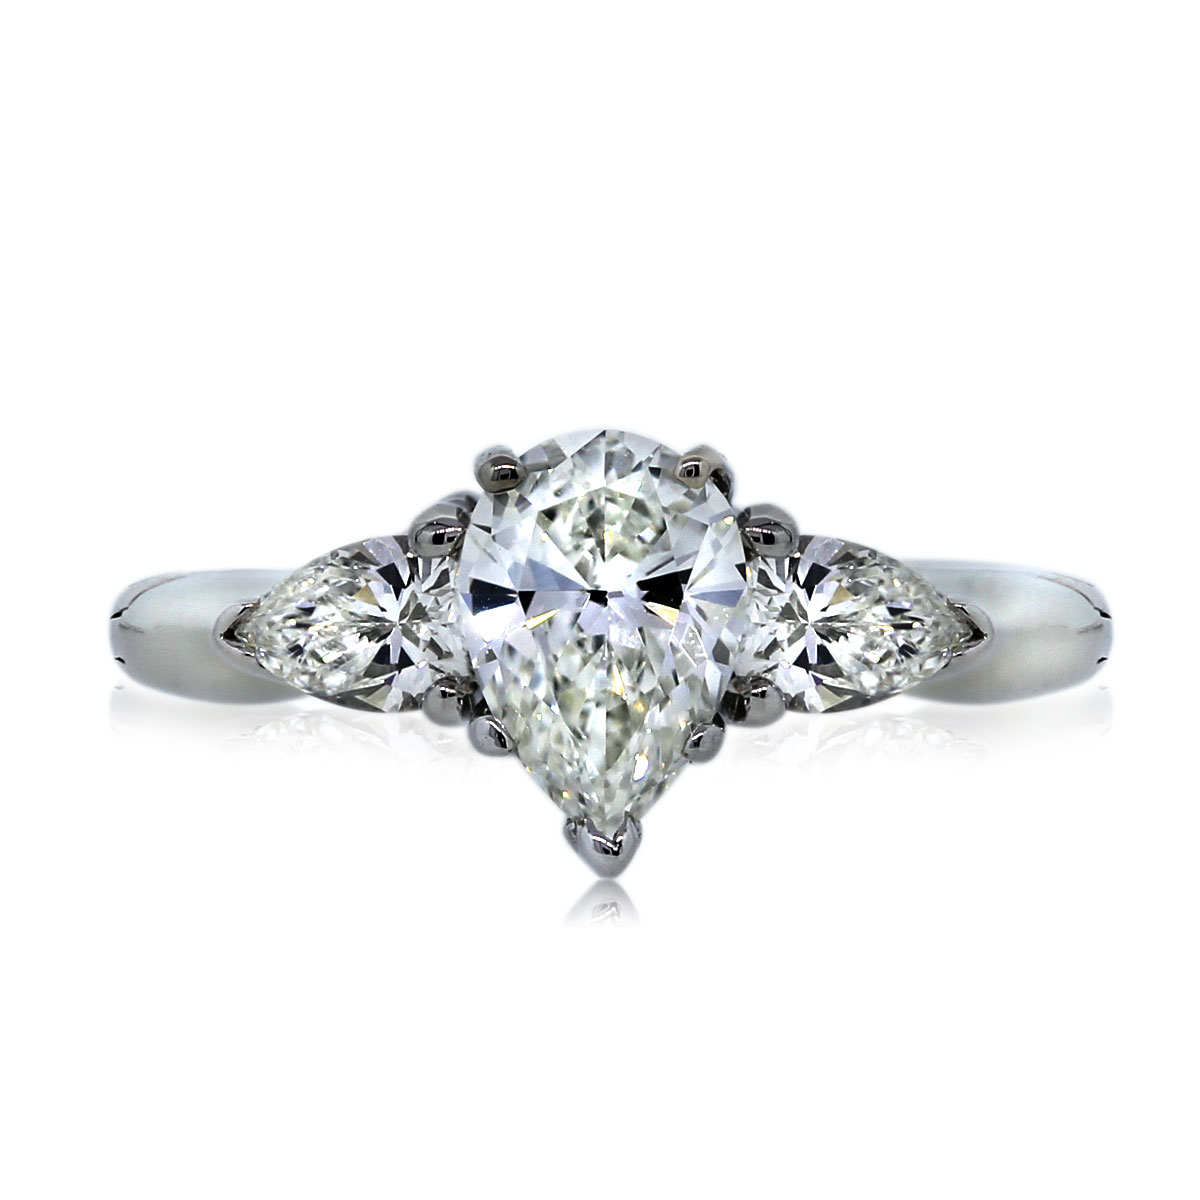 You are Viewing this Three Stone Pear Shaped Diamond!